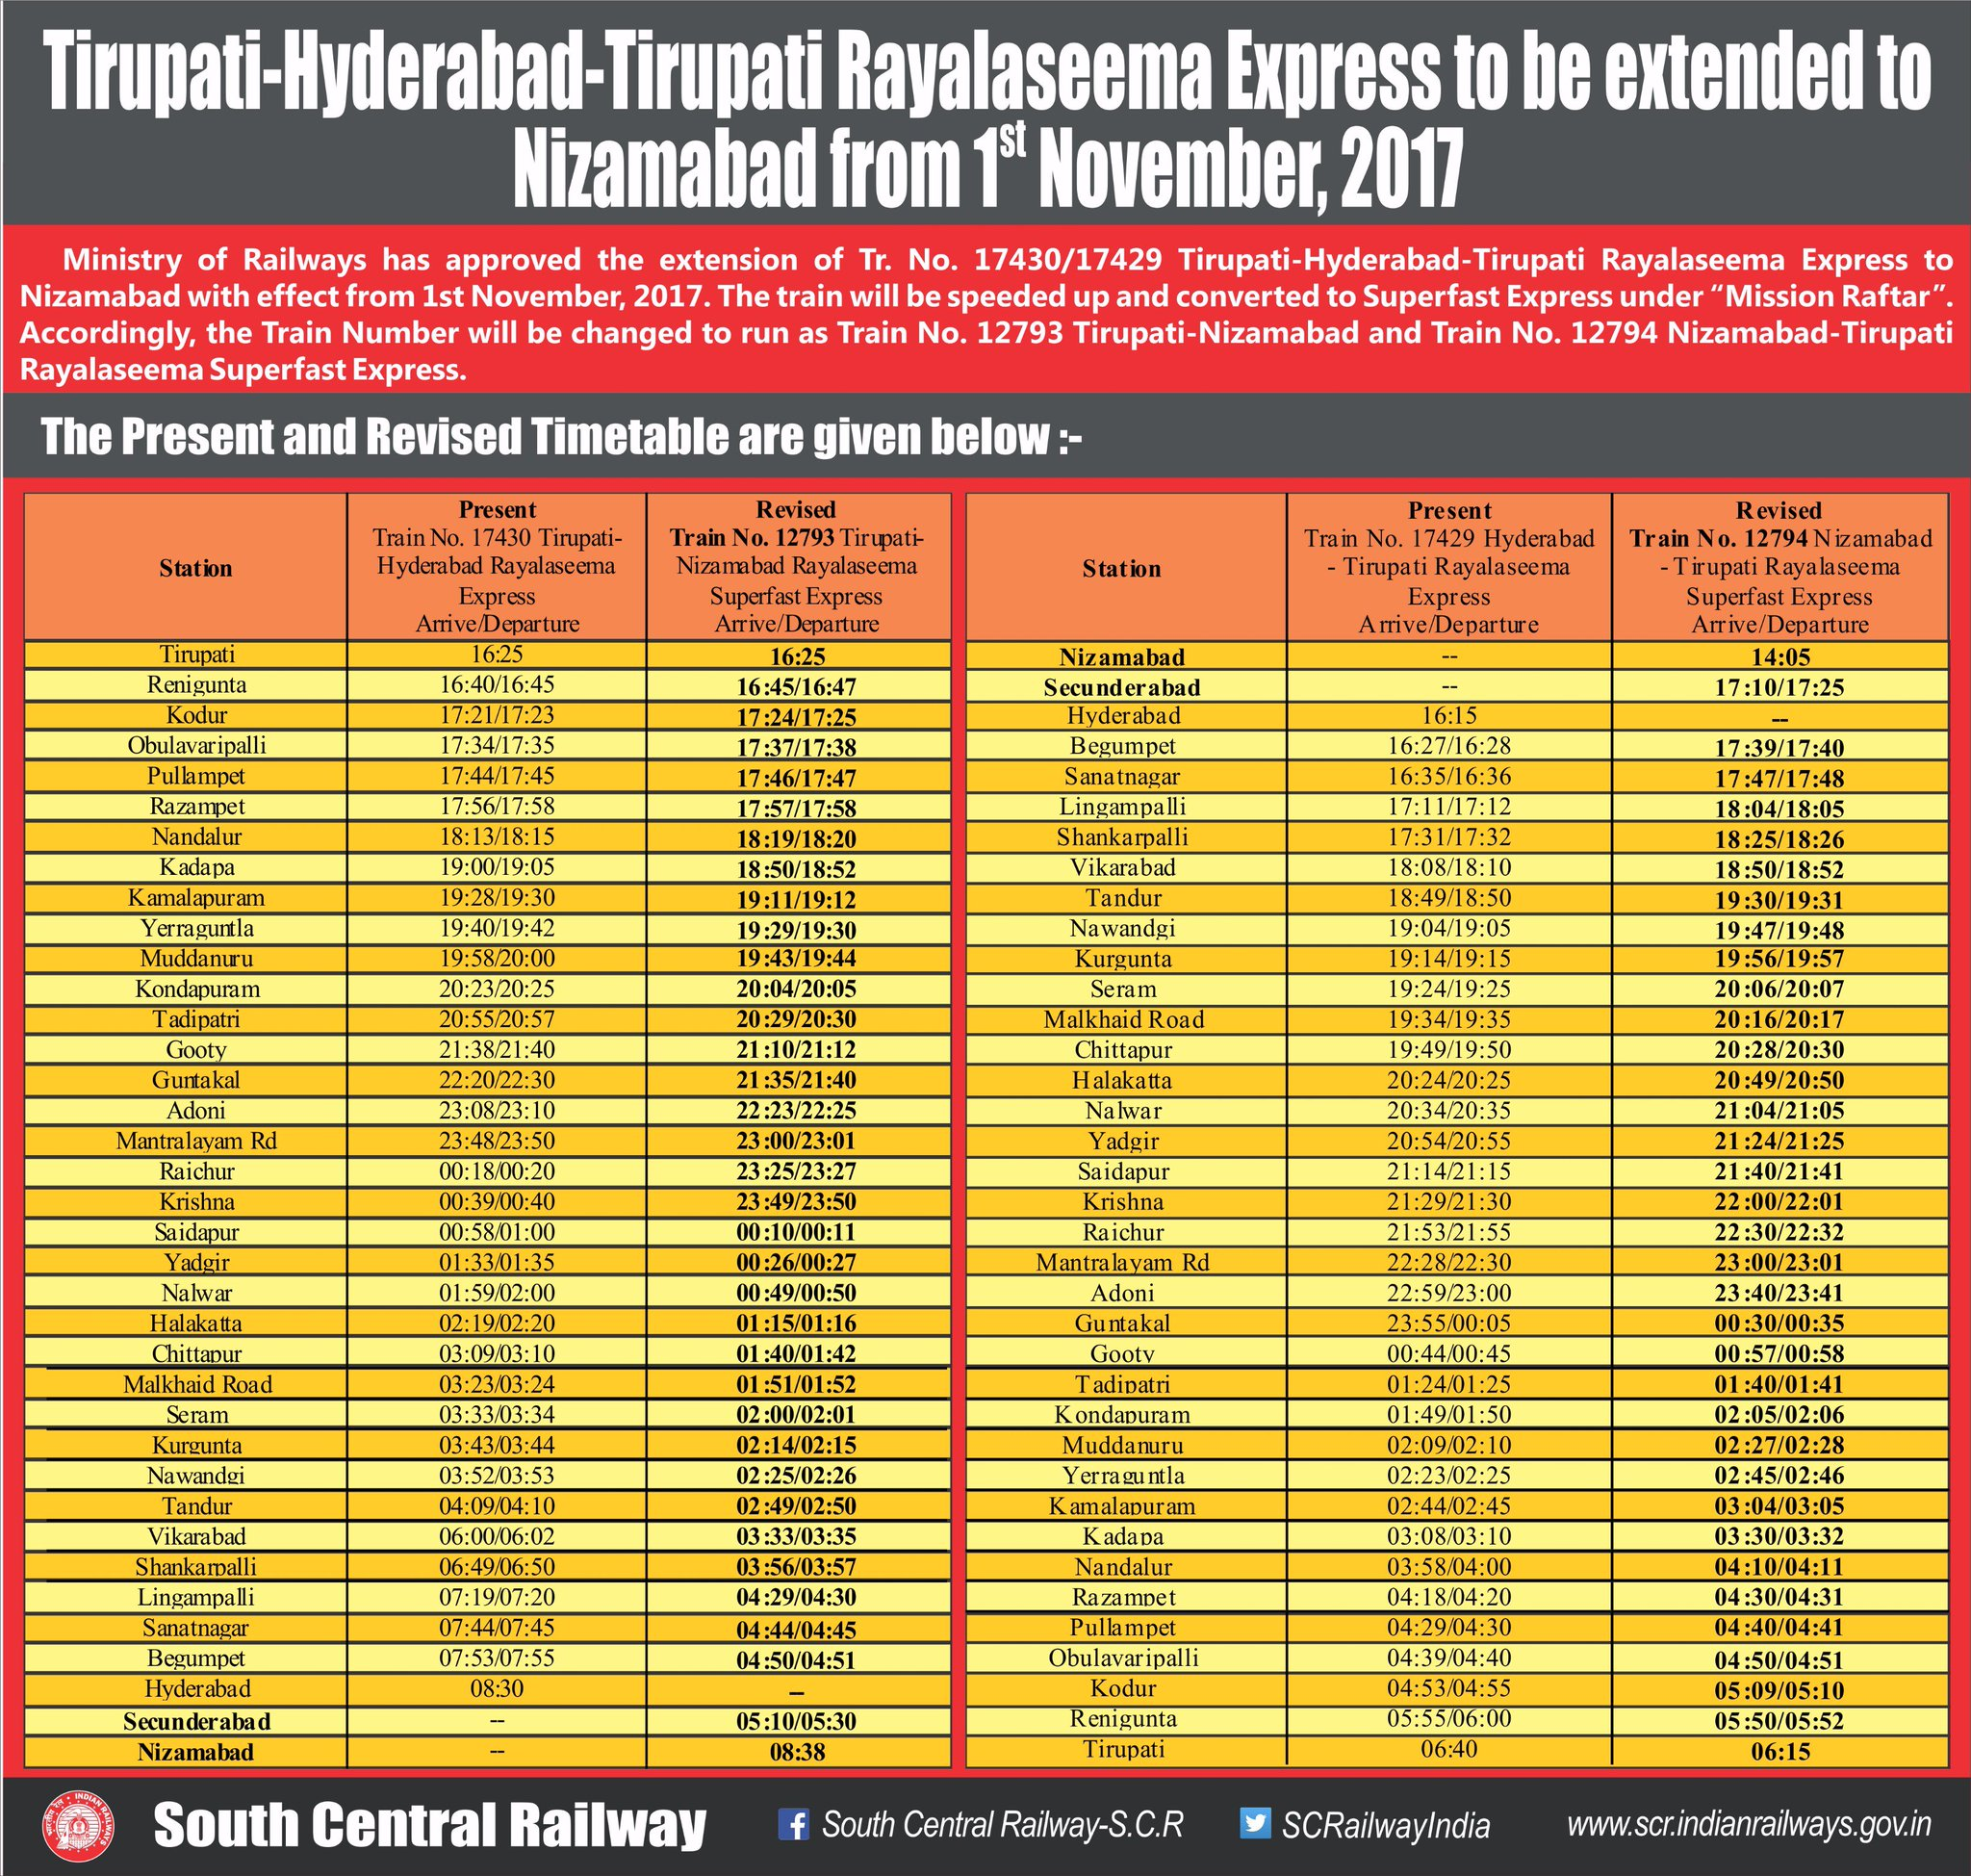 "SouthCentralRailway on Twitter: ""Tirupati-Hyderabad-Tirupati Rayalaseema  Express to be extended to Nizamabad from 1st November, 2017 @RailMinIndia… """